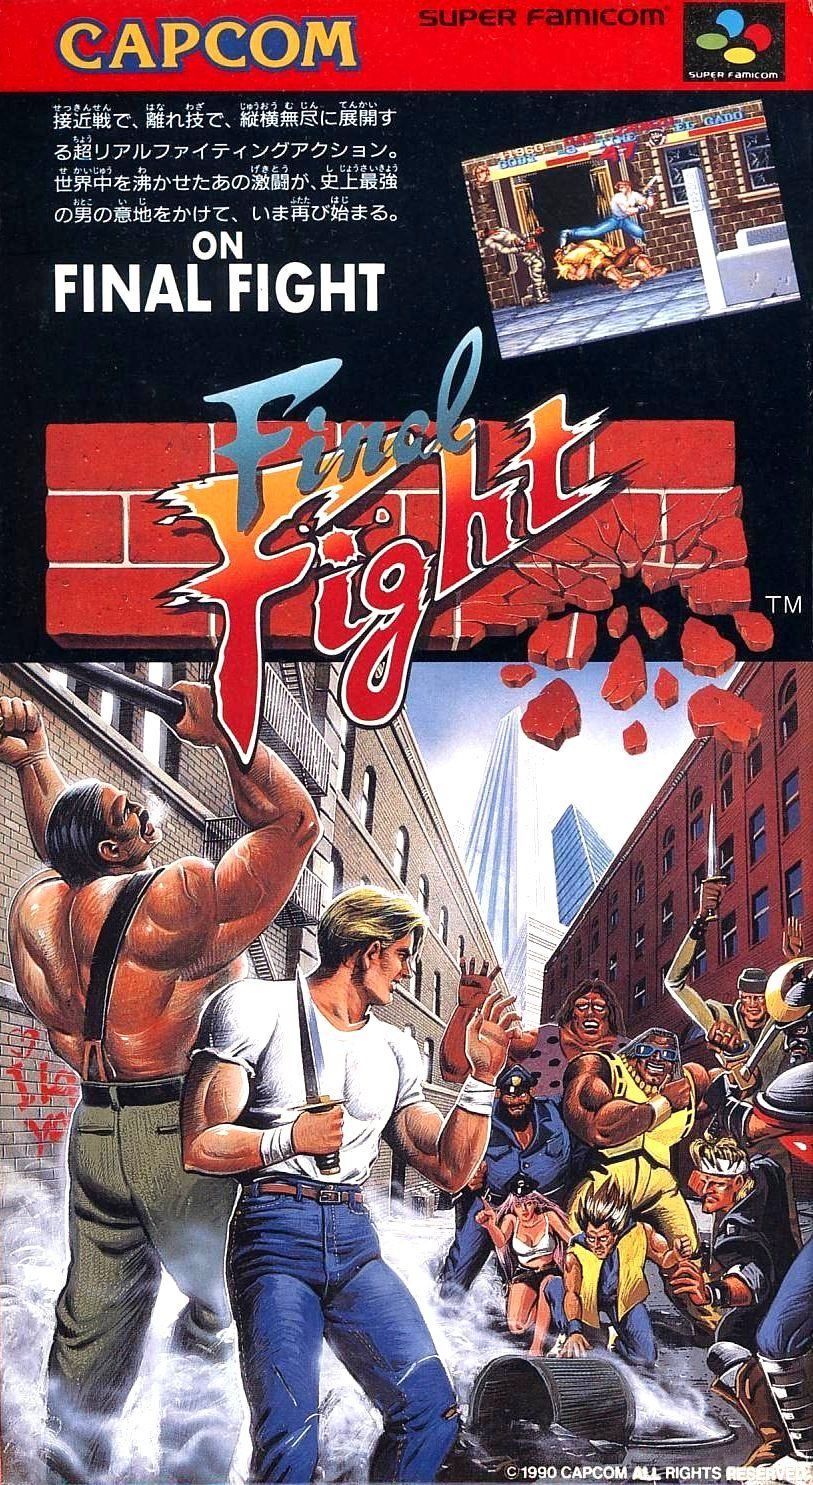 [Análise Retro Game] - Final Fight - Arcade/SNES/PC/SEGA CD Ed9c336b6bd4f1e70e14cb4b80f05430